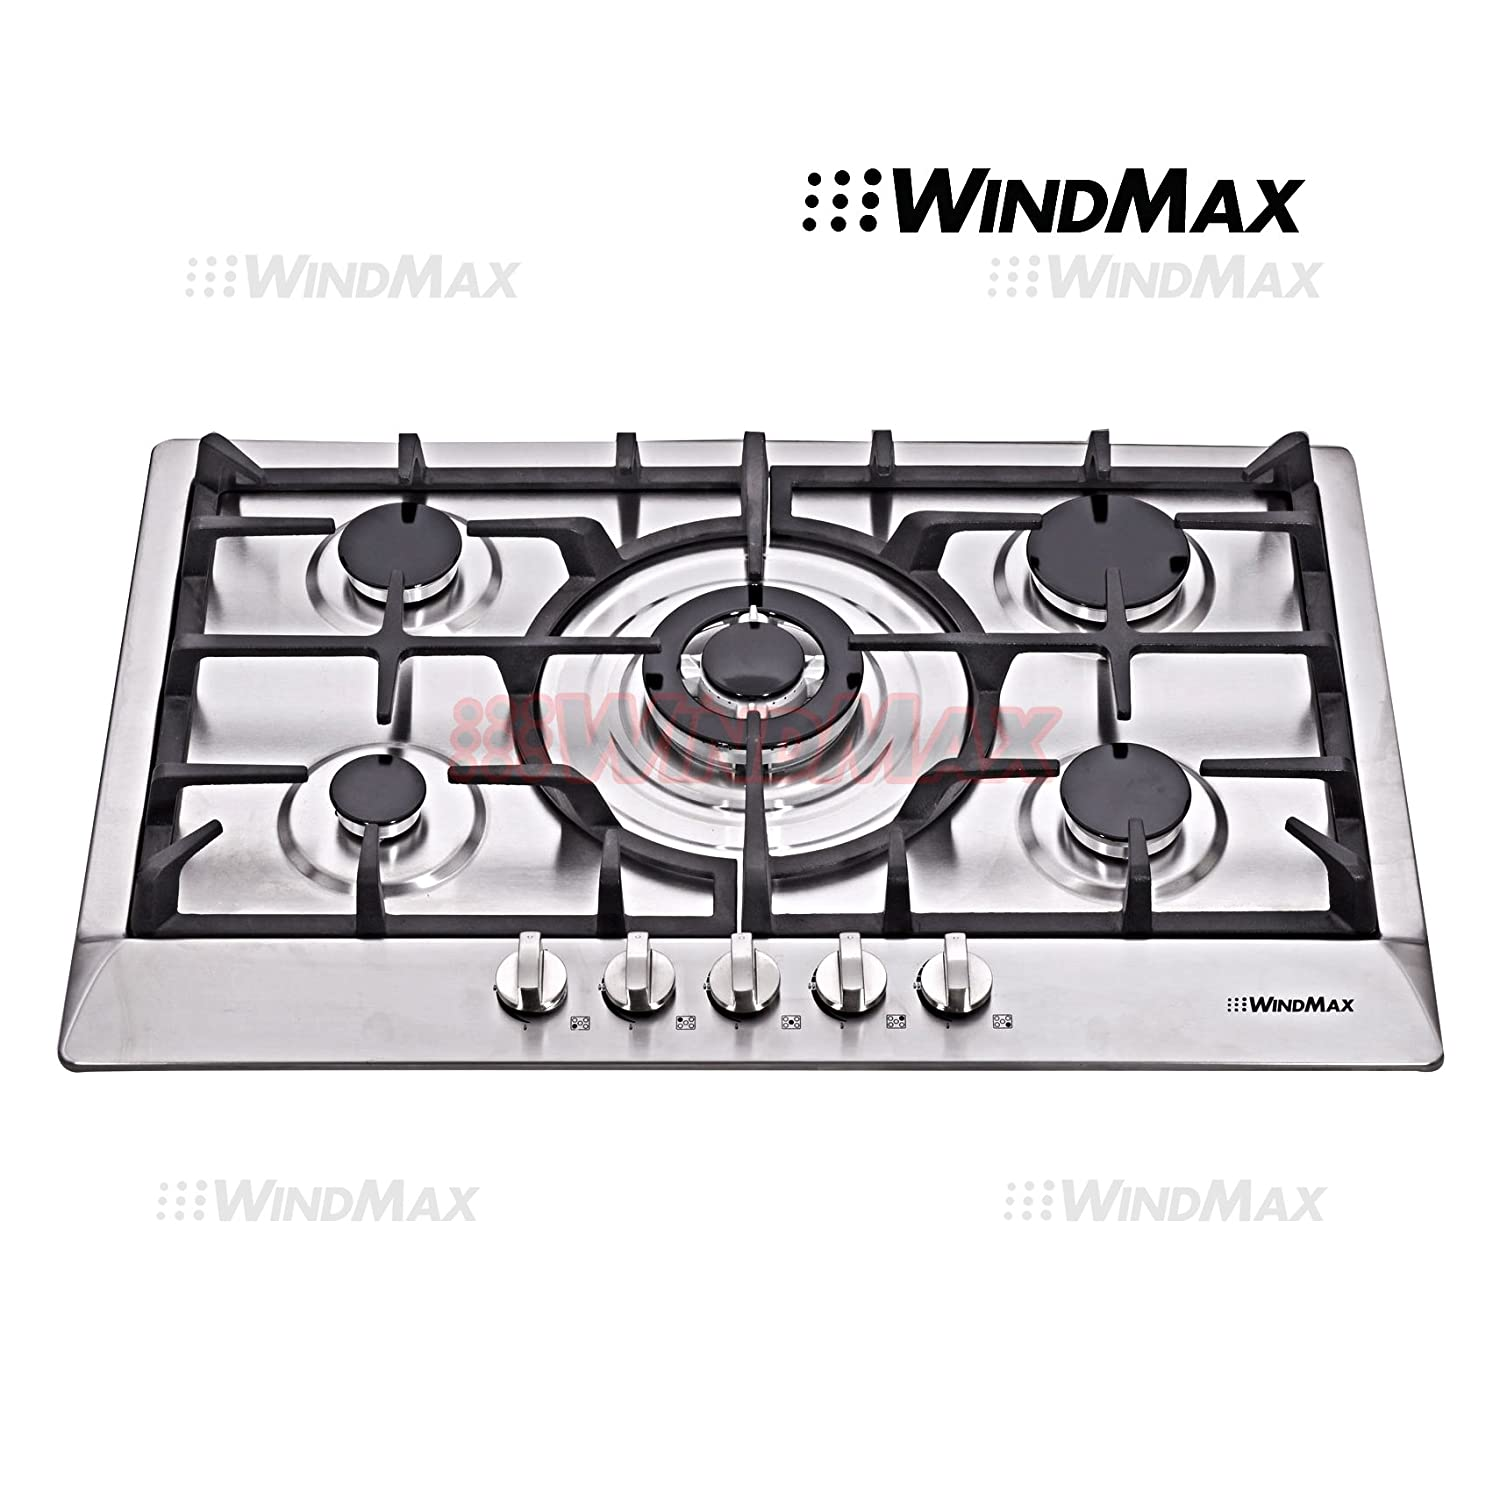 Charming Amazon.com: Windmax New 30 Inch Stainless Steel 5 Burner Built In Stoves NG  LPG Gas Cooktop Cooker: Appliances